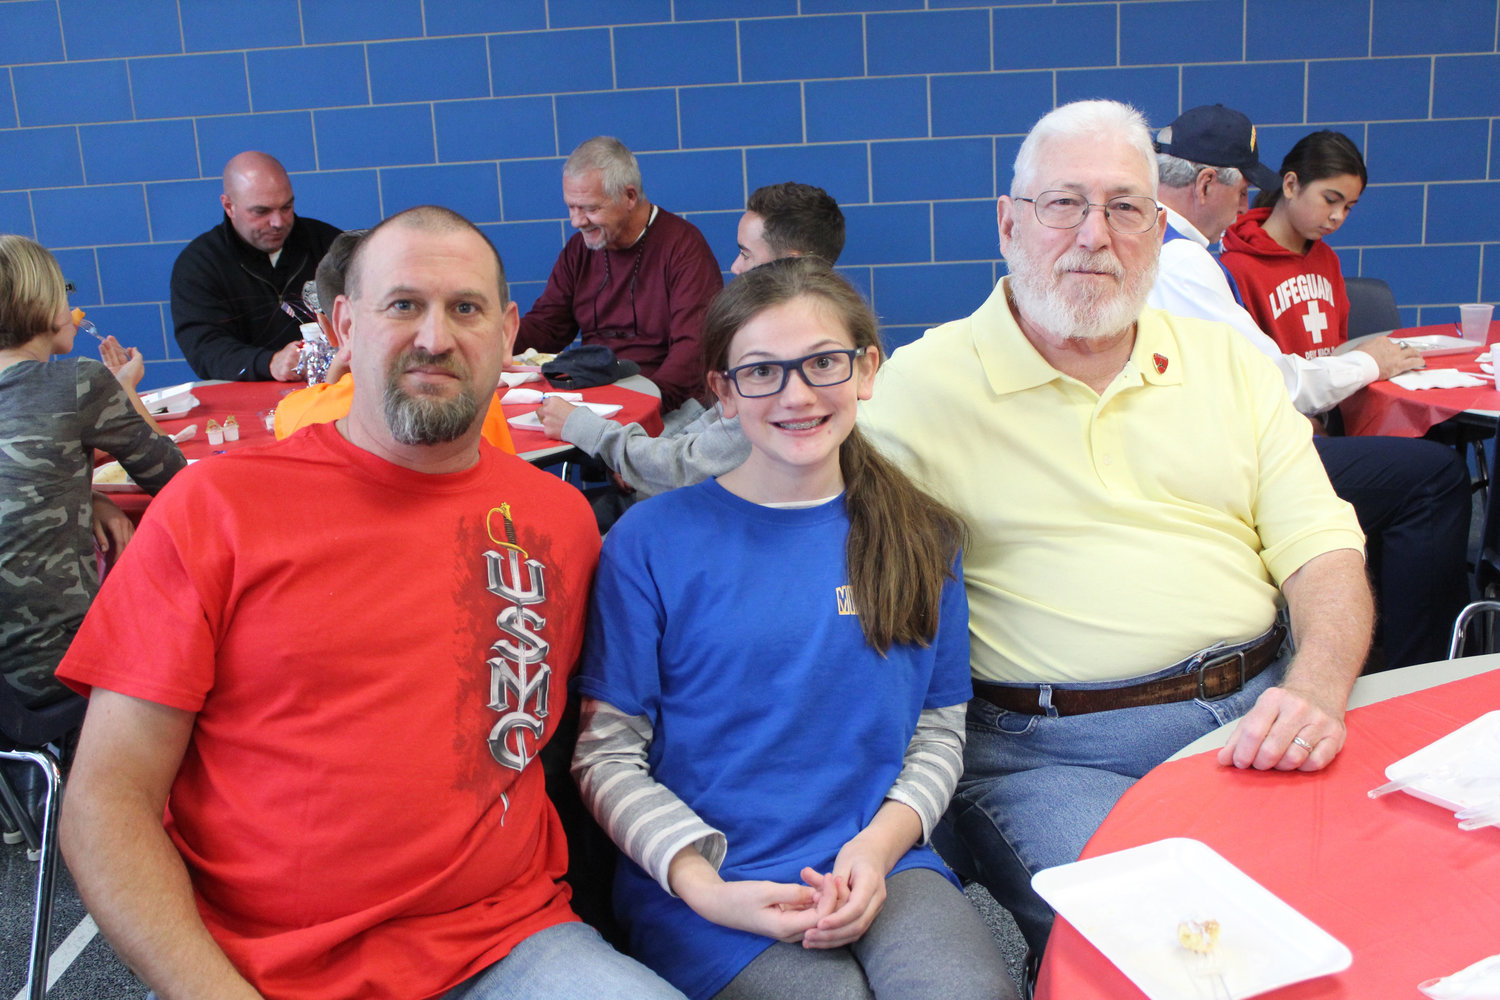 Scot Brown, Madison Brown and Alan Leedom eat breakfast at MAMS as part of the Veterans Day program Nov. 9.